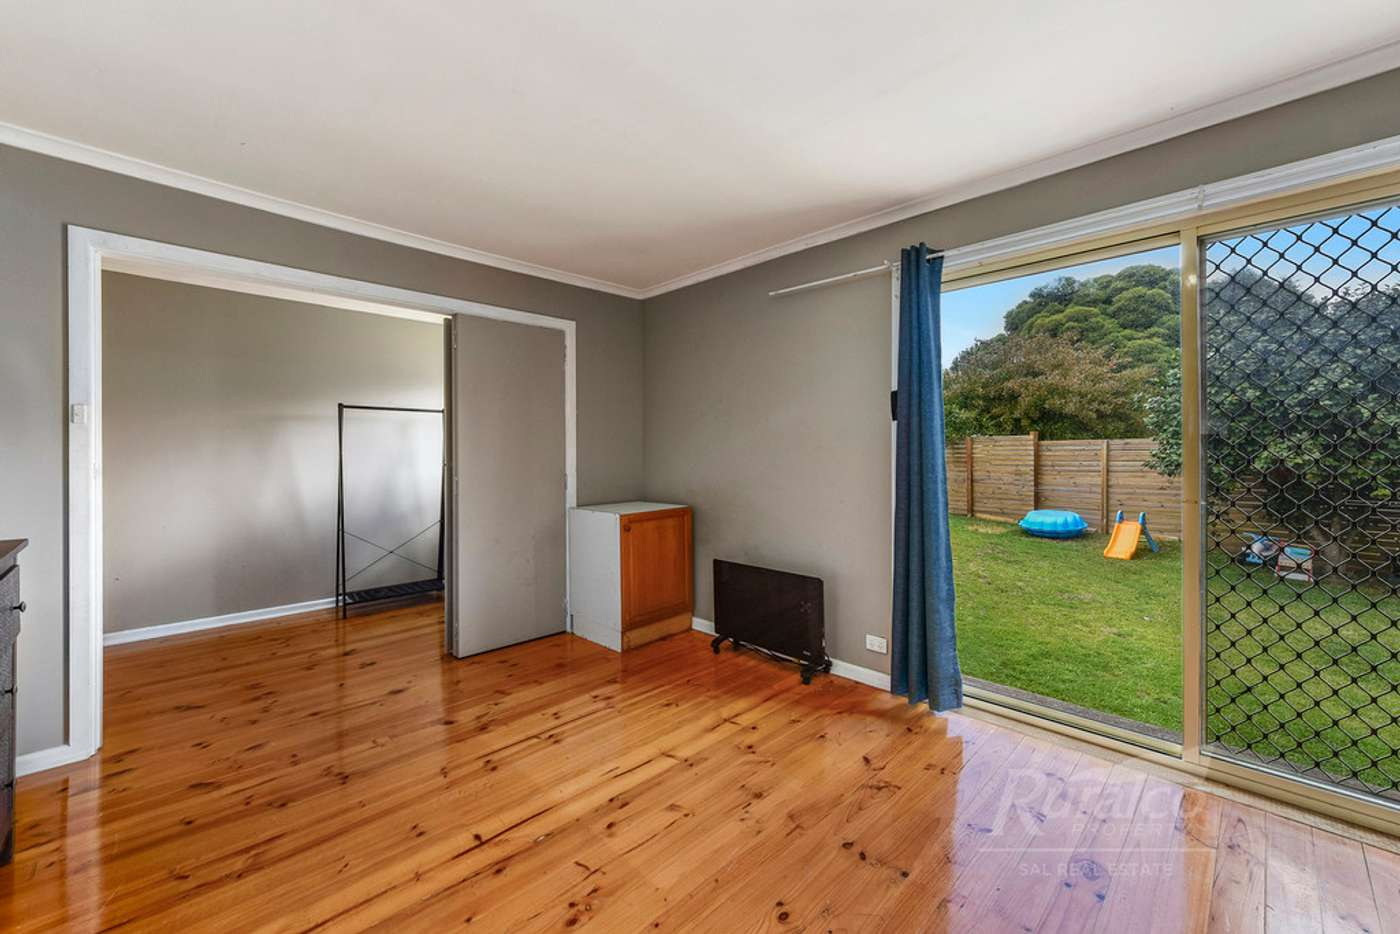 Sixth view of Homely house listing, 11 MacArthur Street, Mount Gambier SA 5290